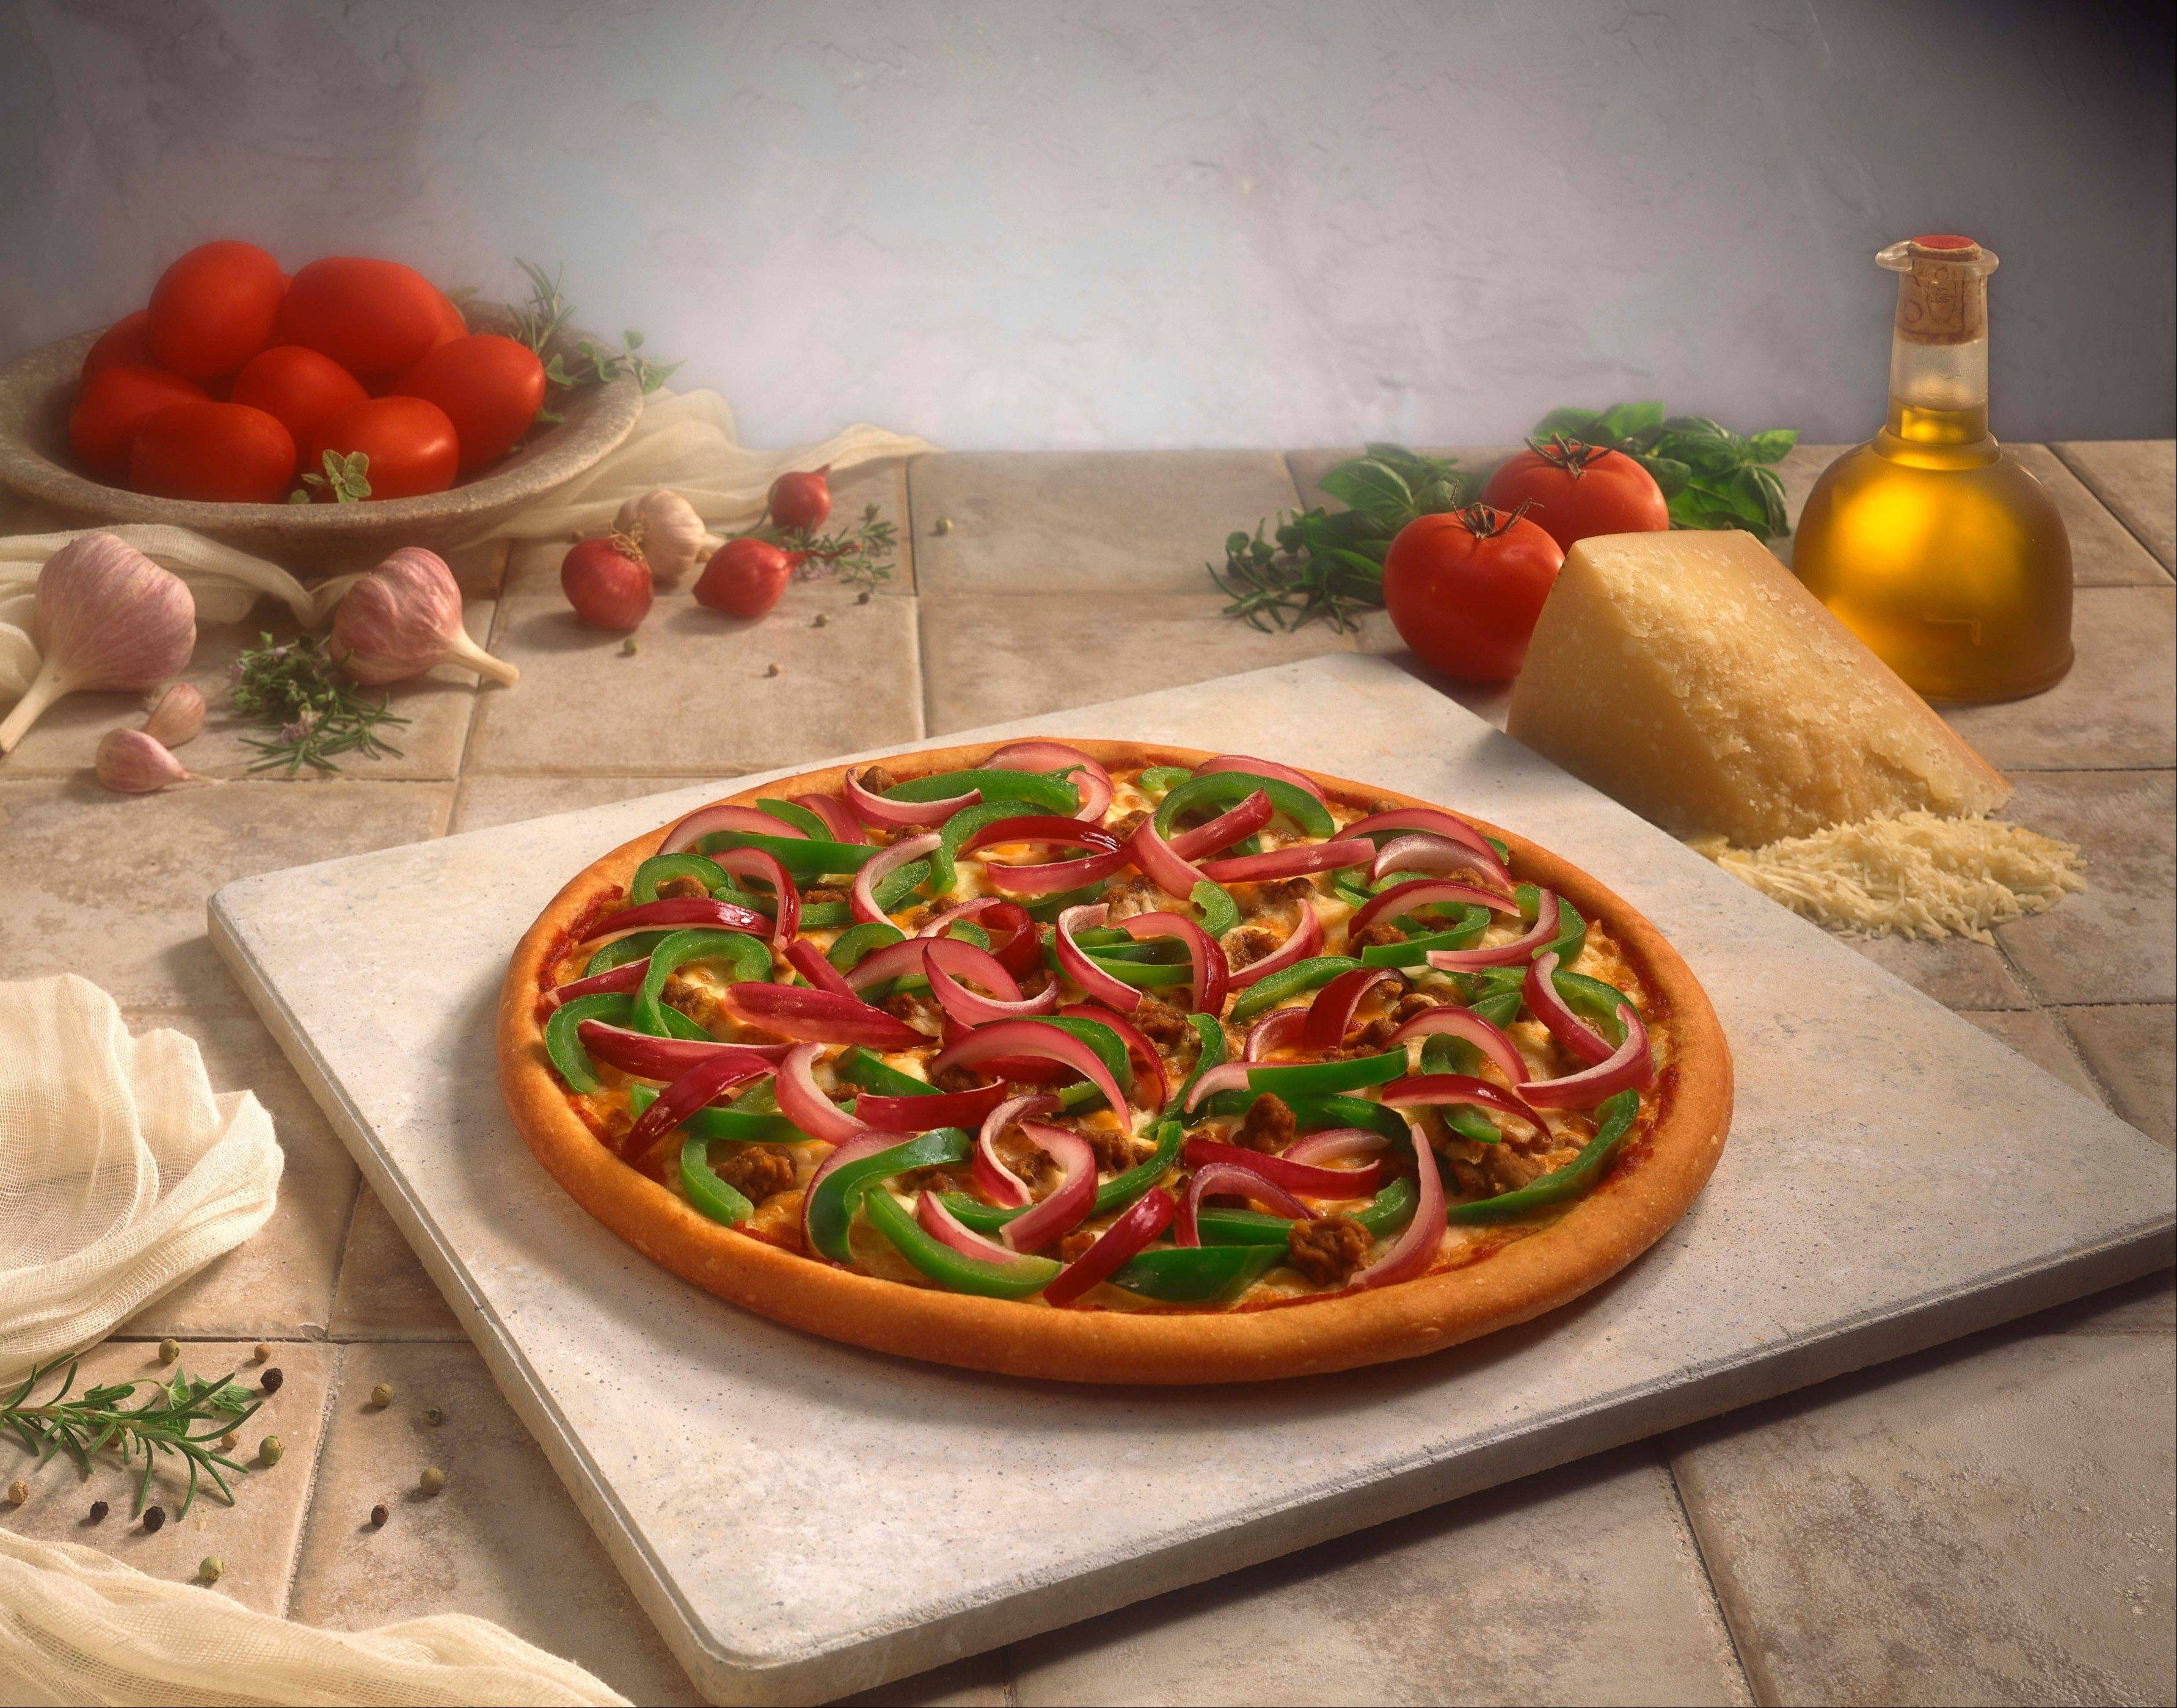 Add lots of veggies to boost nutritional value of pizza. Also, be sure to fill half your child�s plate with pizza, and the other half with veggies or salad.